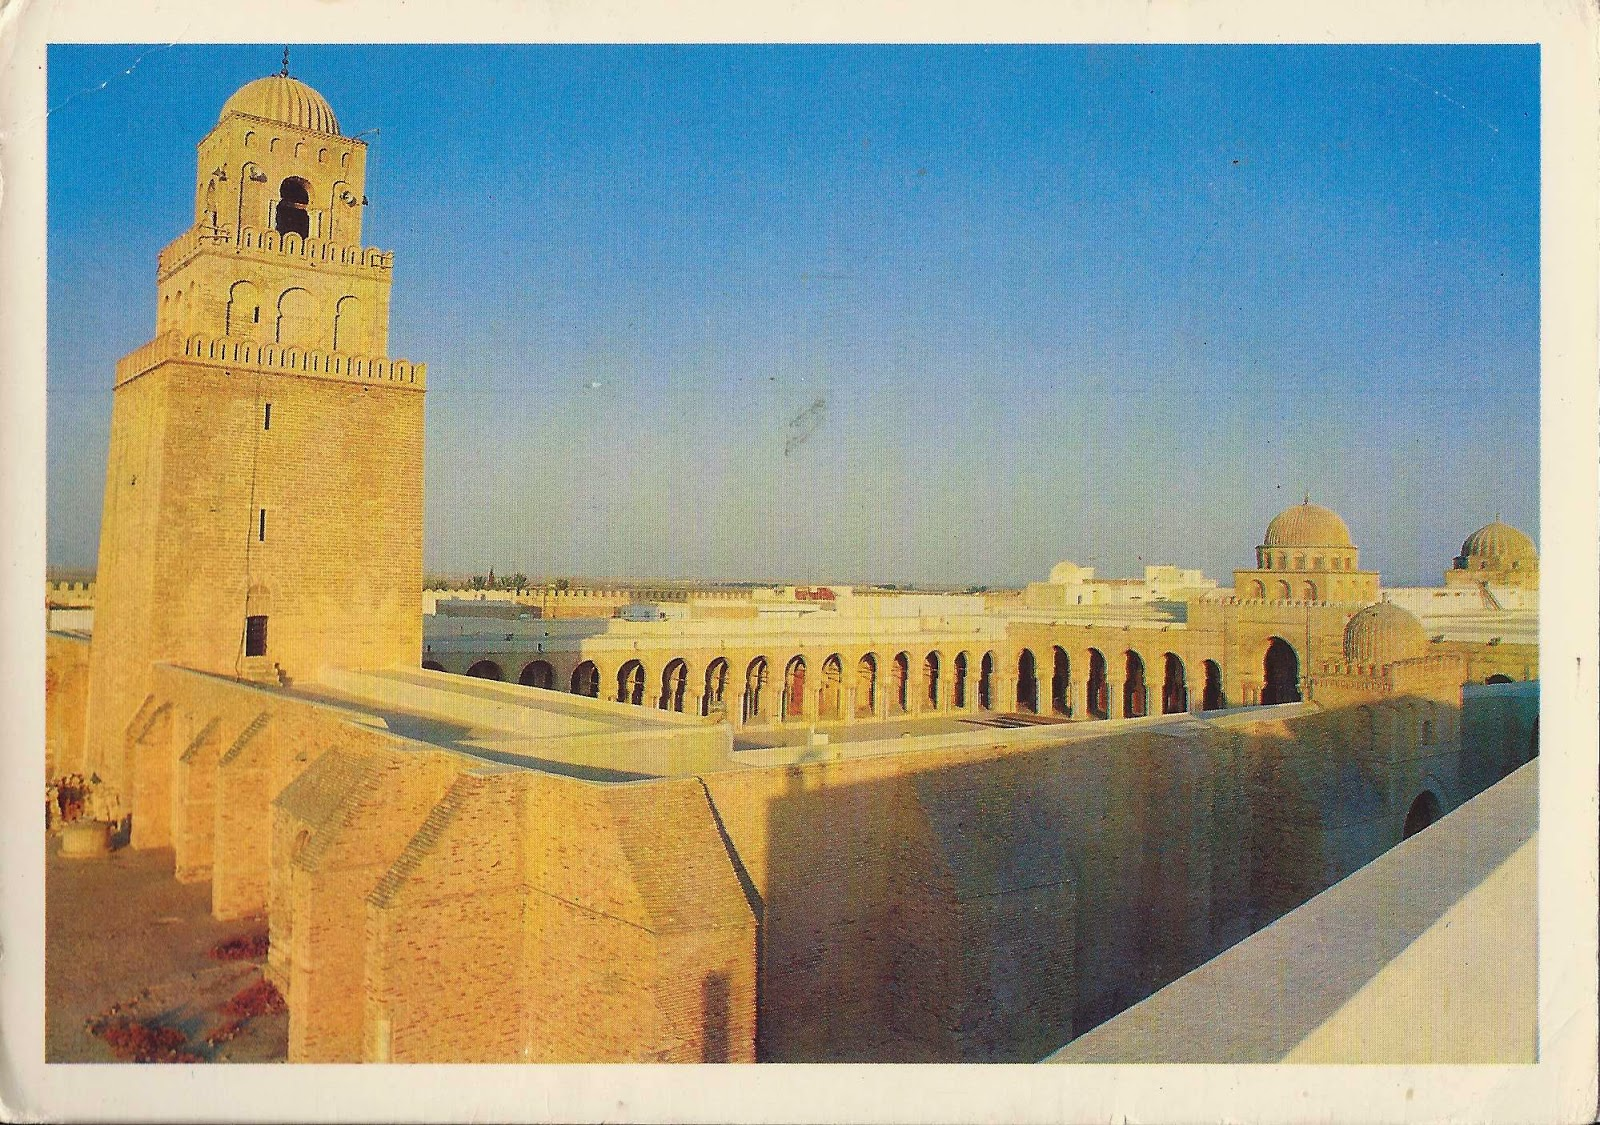 Unesco world heritage site: the Mosque of Uqba in Kairouan